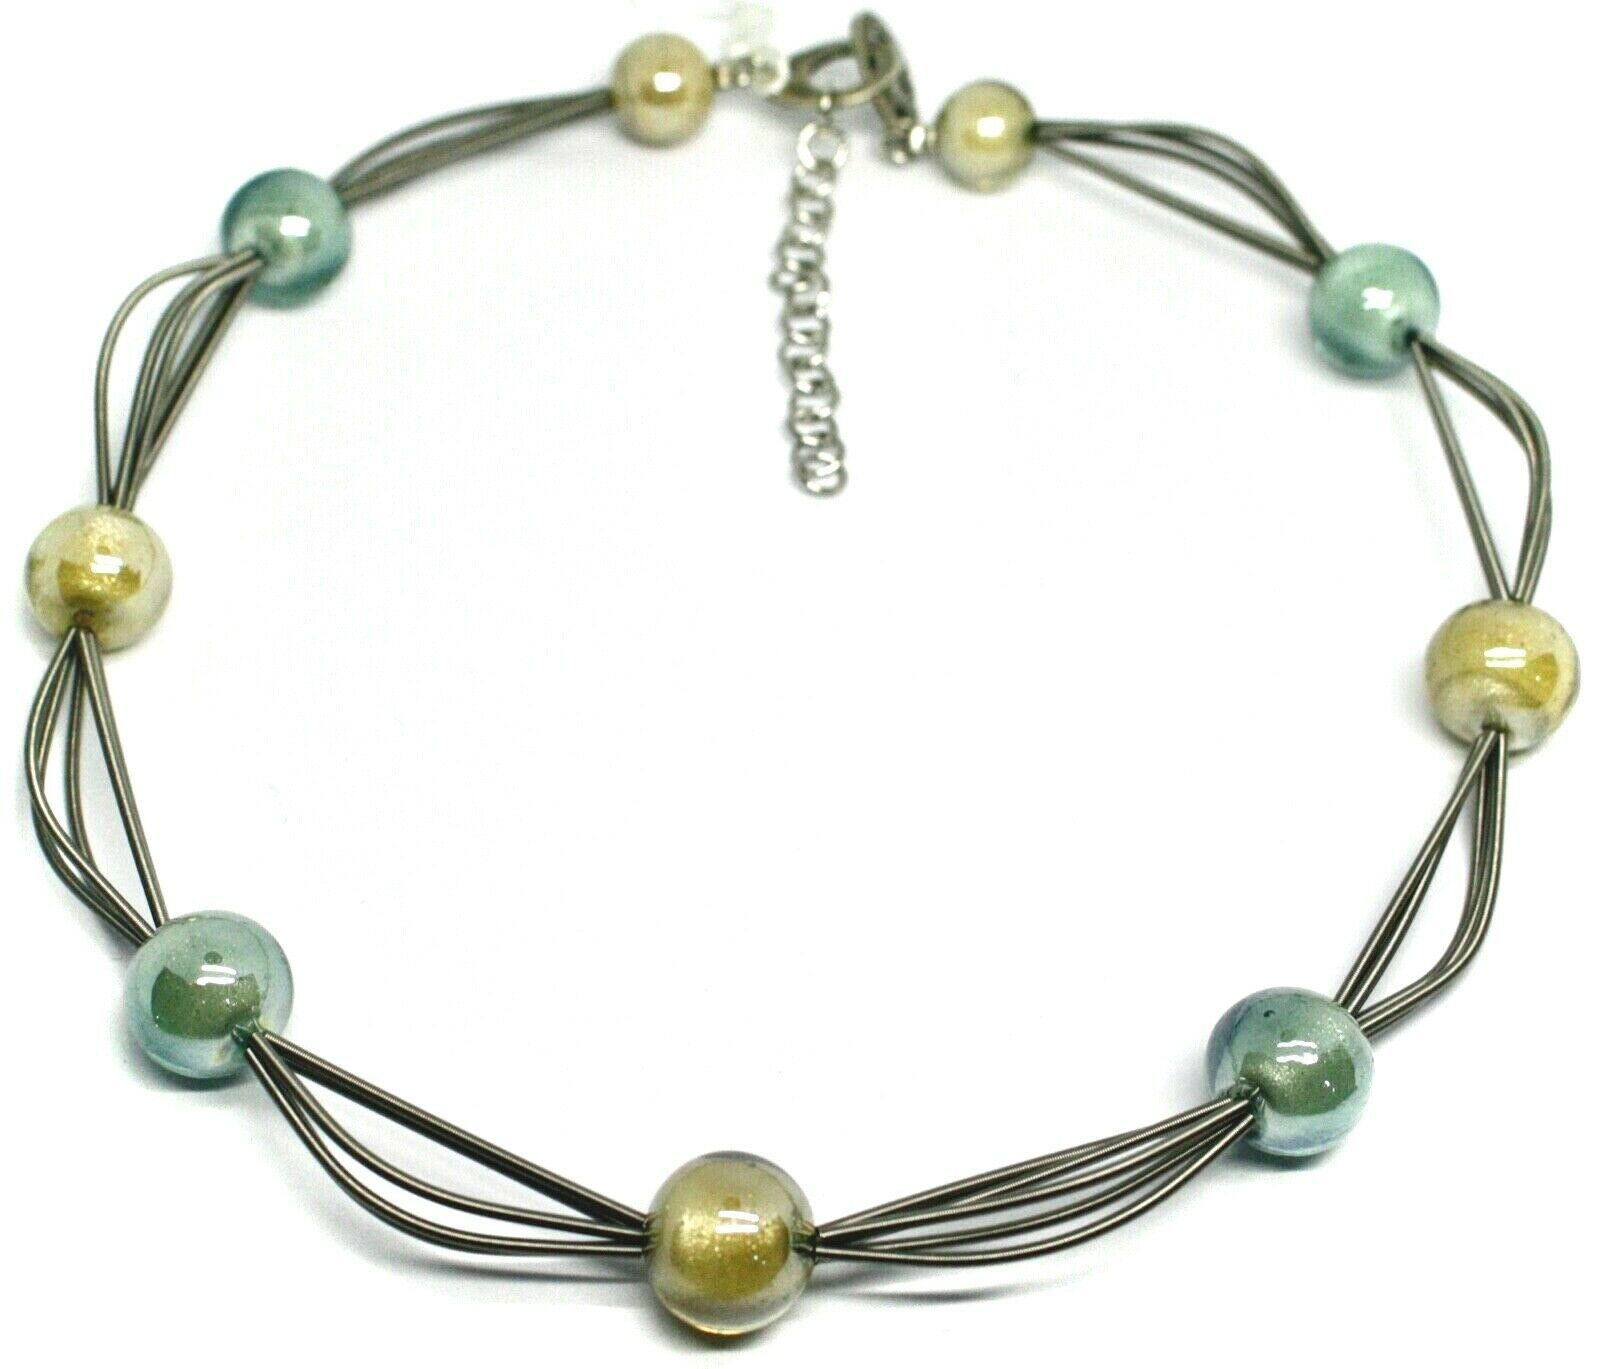 """MULTI WIRES NECKLACE YELLOW BLUE BIG MURANO GLASS SPHERES, 50cm 20"""" ITALY MADE"""